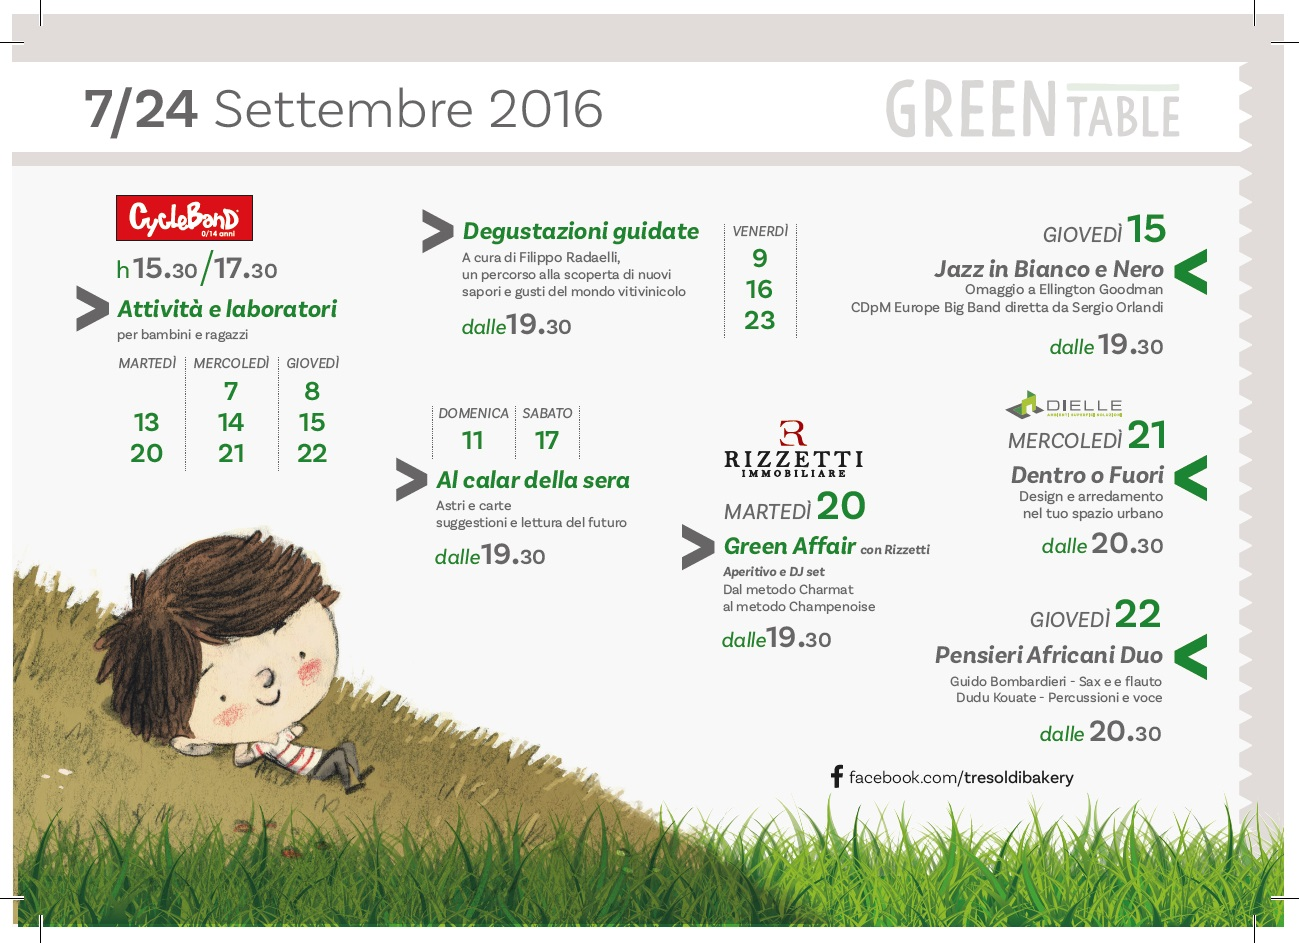 Programma dell'evento Tresoldi Green Table